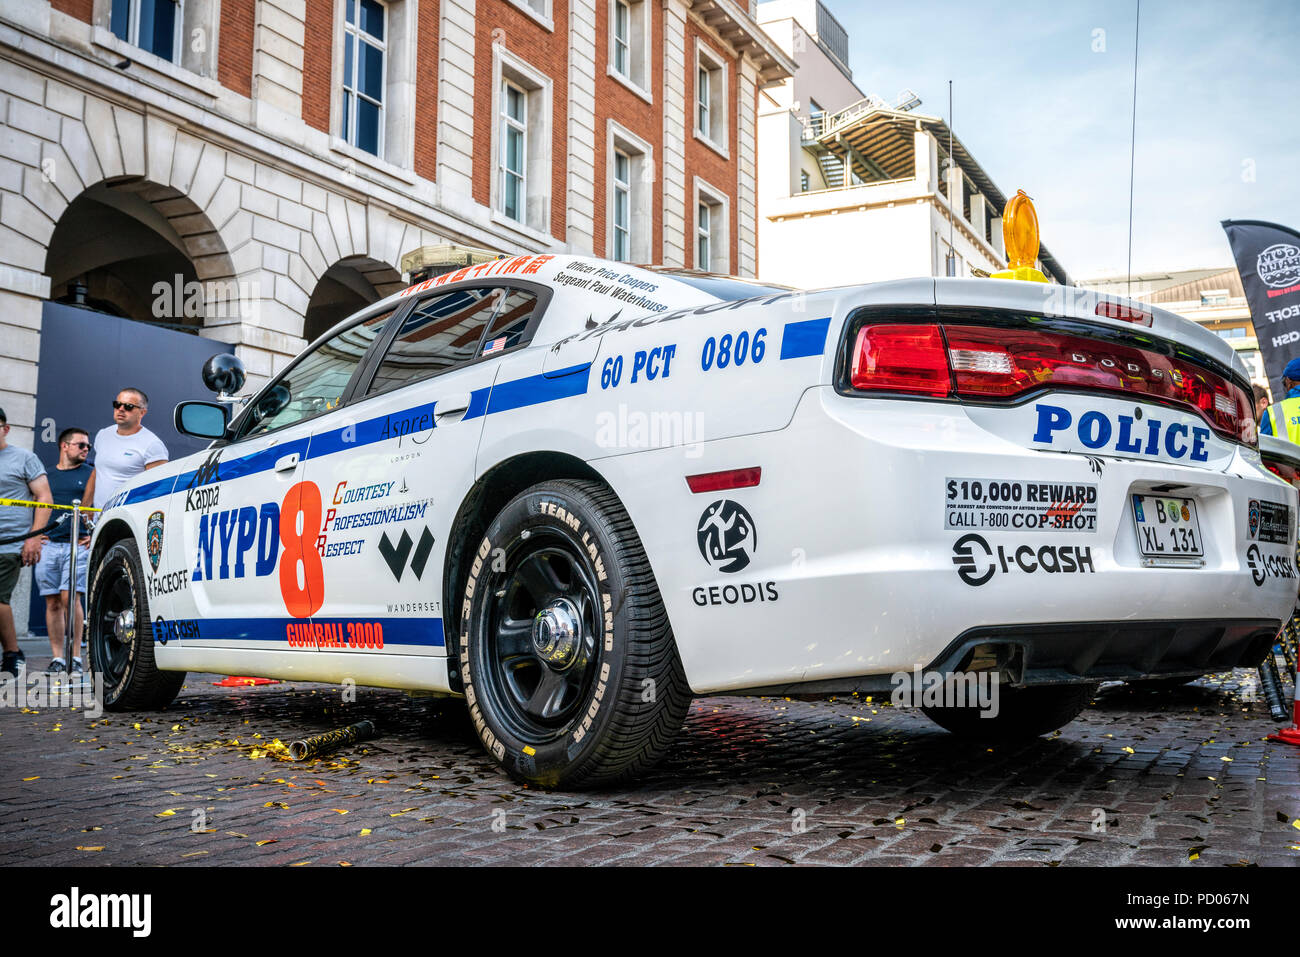 dodge charger police car in stock photos dodge charger police car in stock images alamy. Black Bedroom Furniture Sets. Home Design Ideas